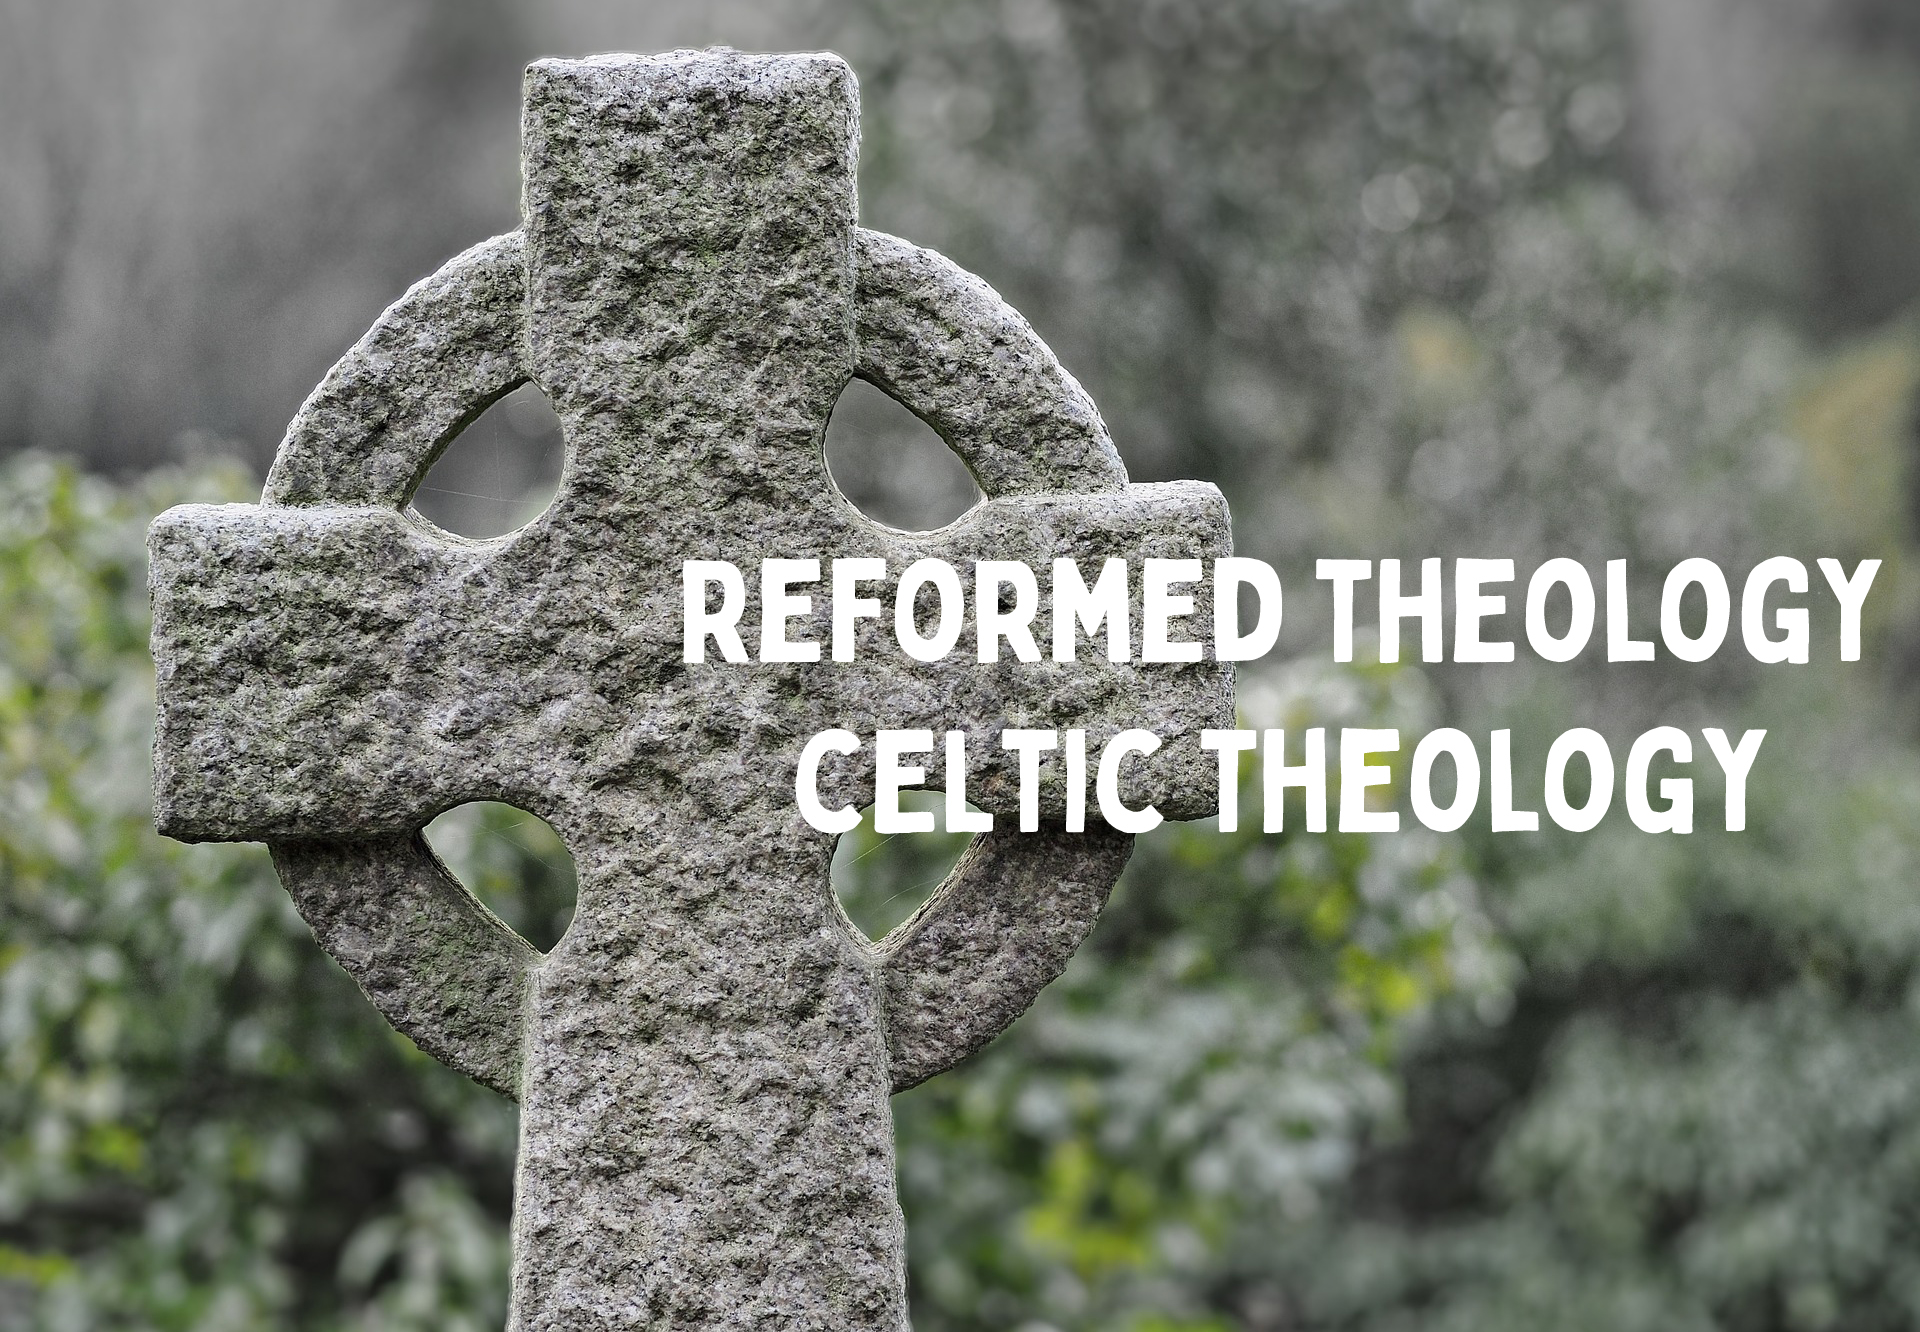 Permalink to:Reformed Theology / Celtic Theology